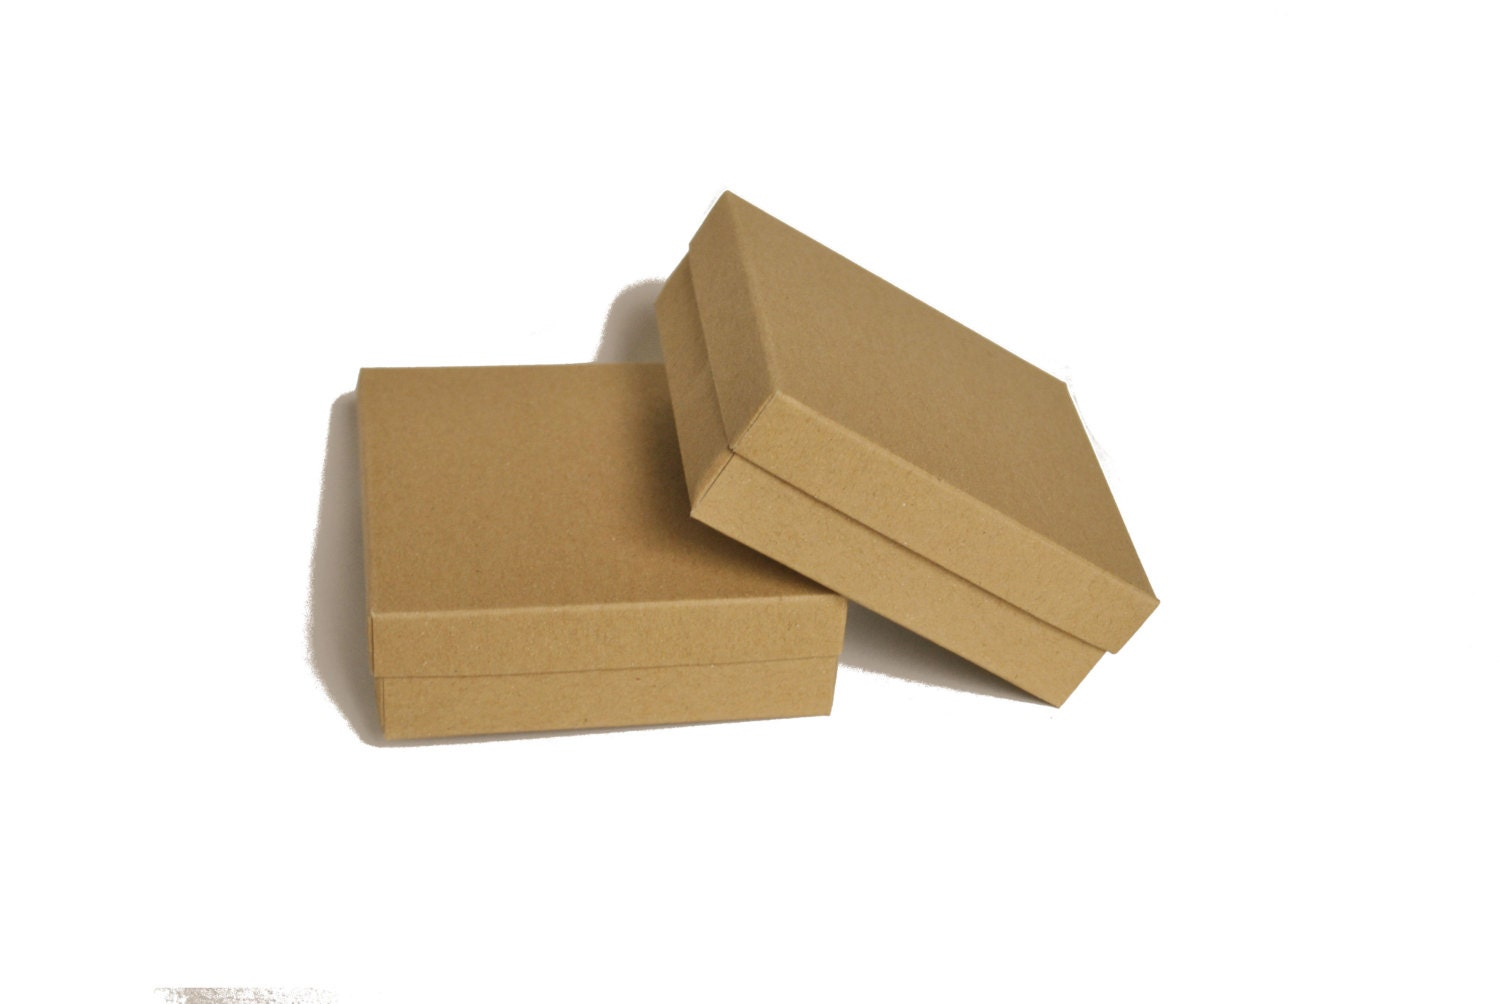 18 jewelry boxes with lid i kraft brown grey white for Small cardboard jewelry boxes with lids